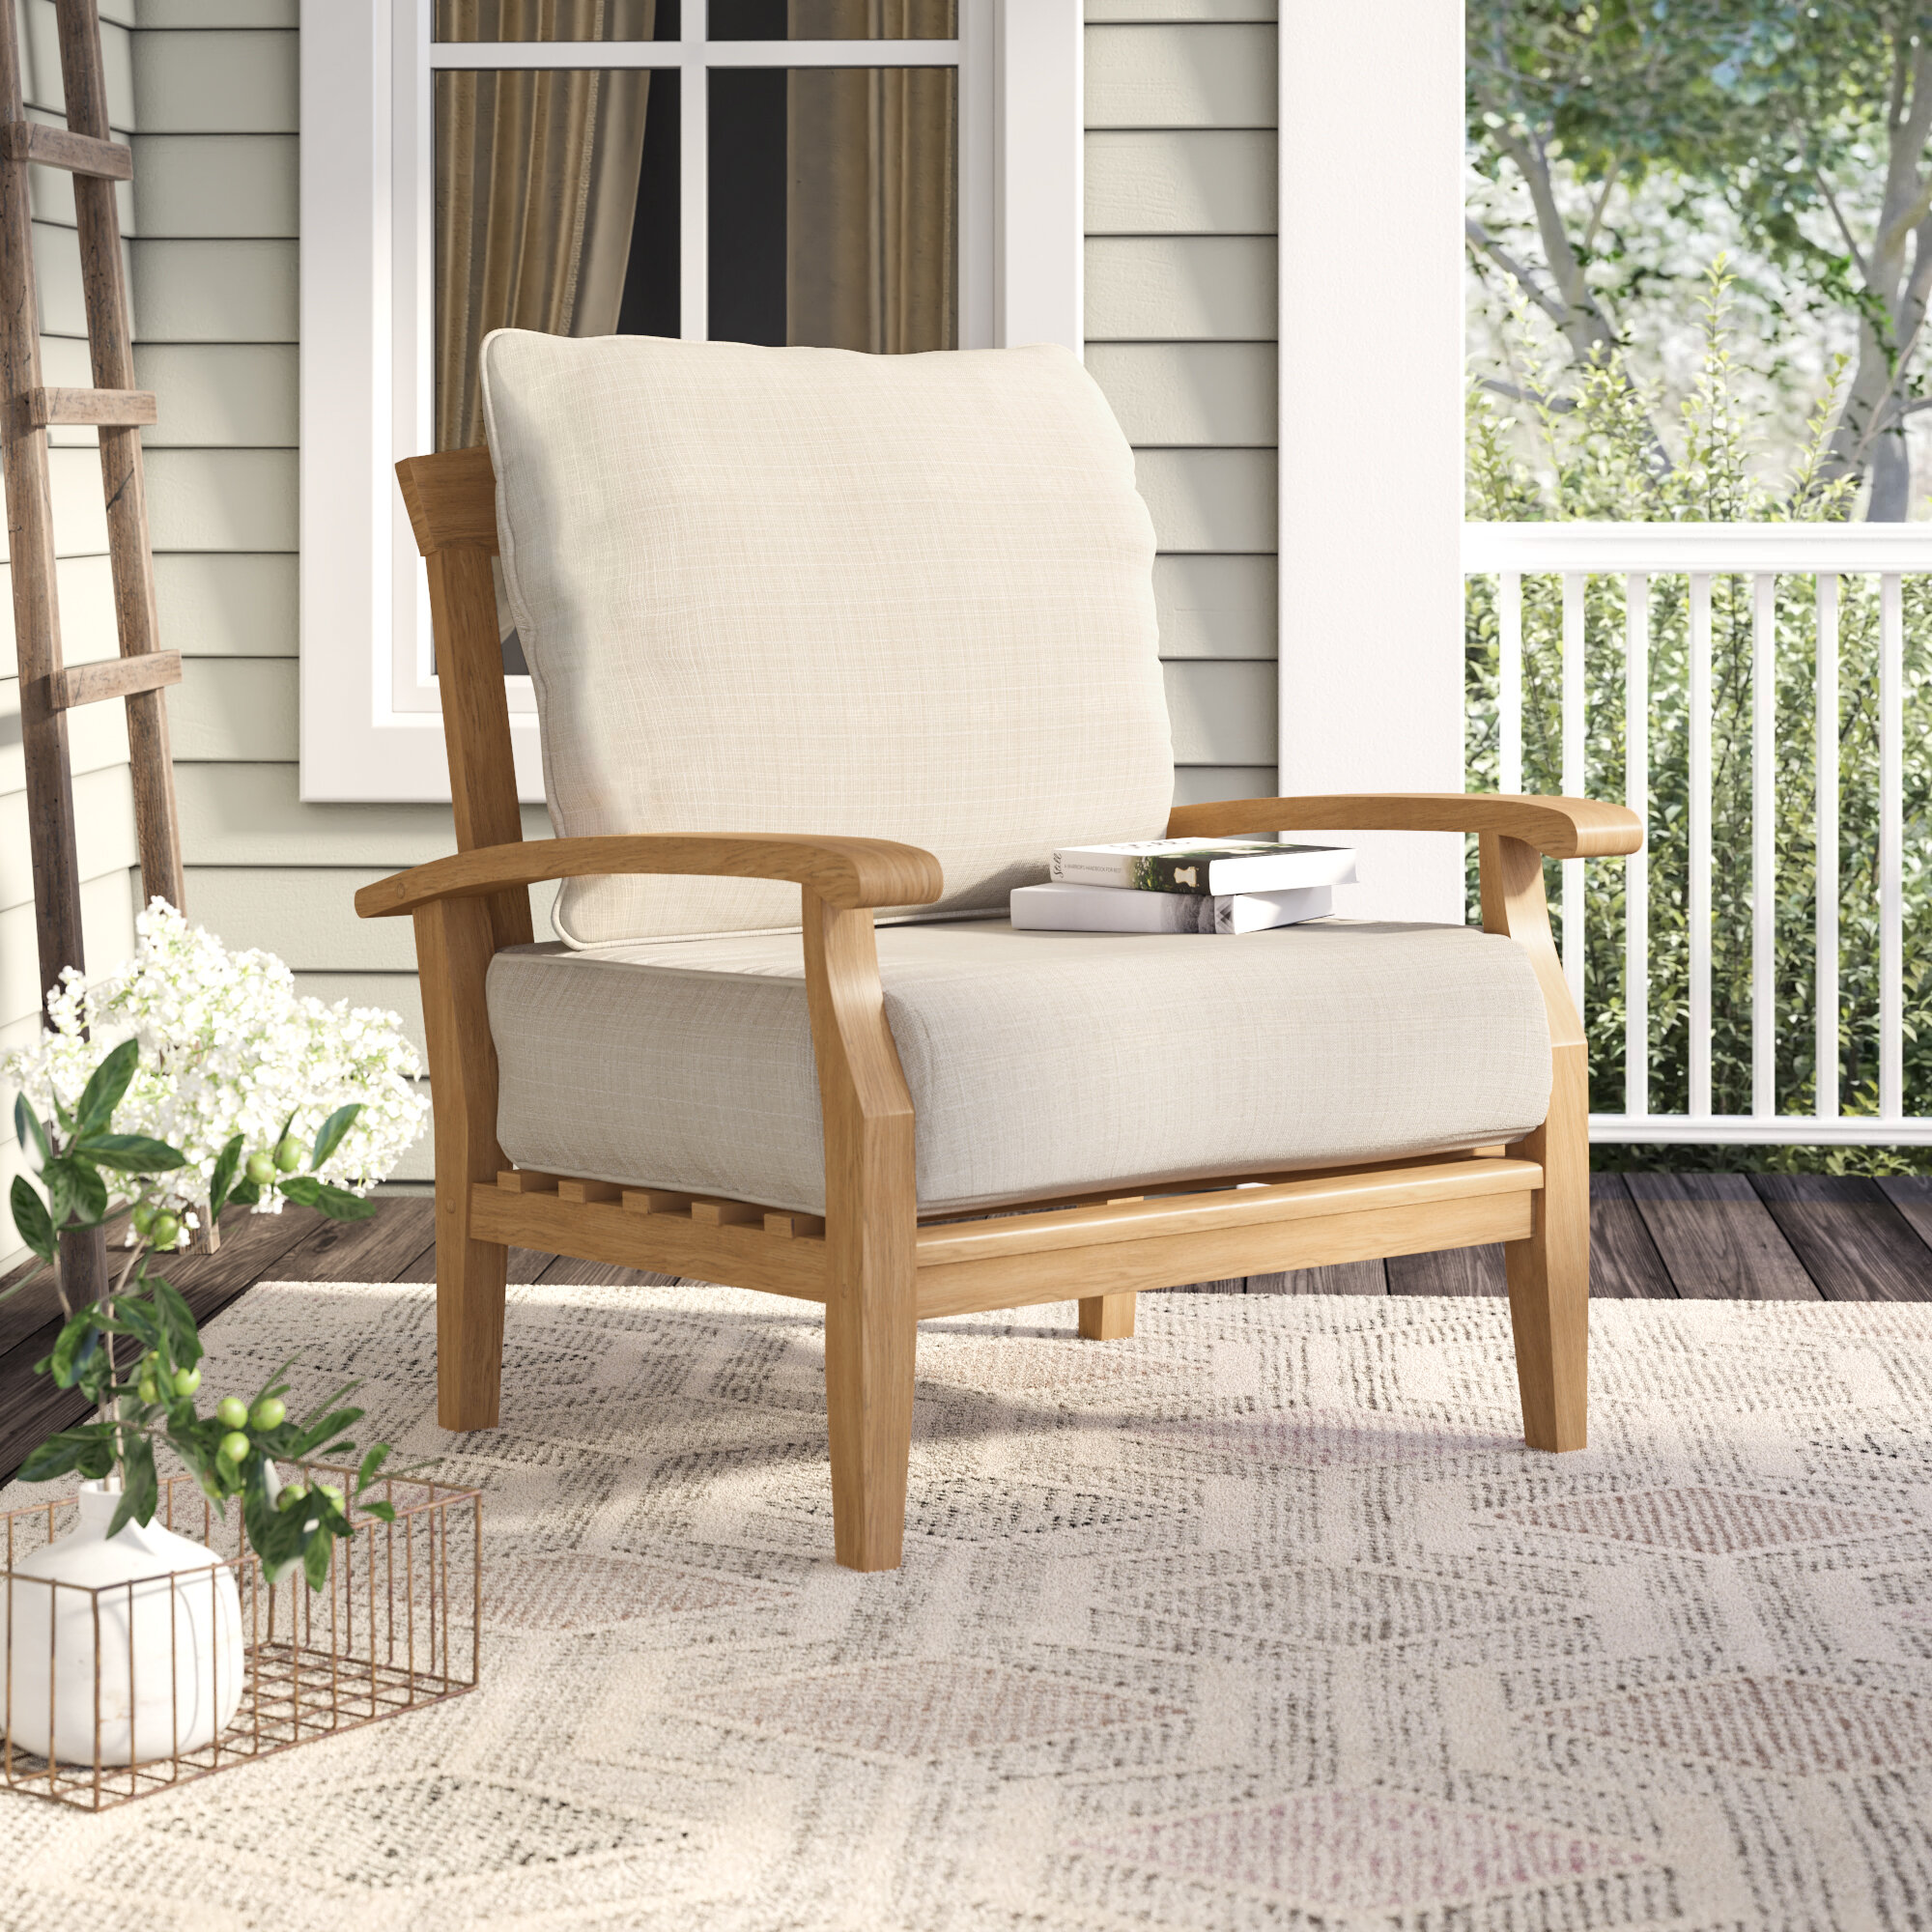 Summerton Teak Patio Chair With Cushions Reviews Birch Lane